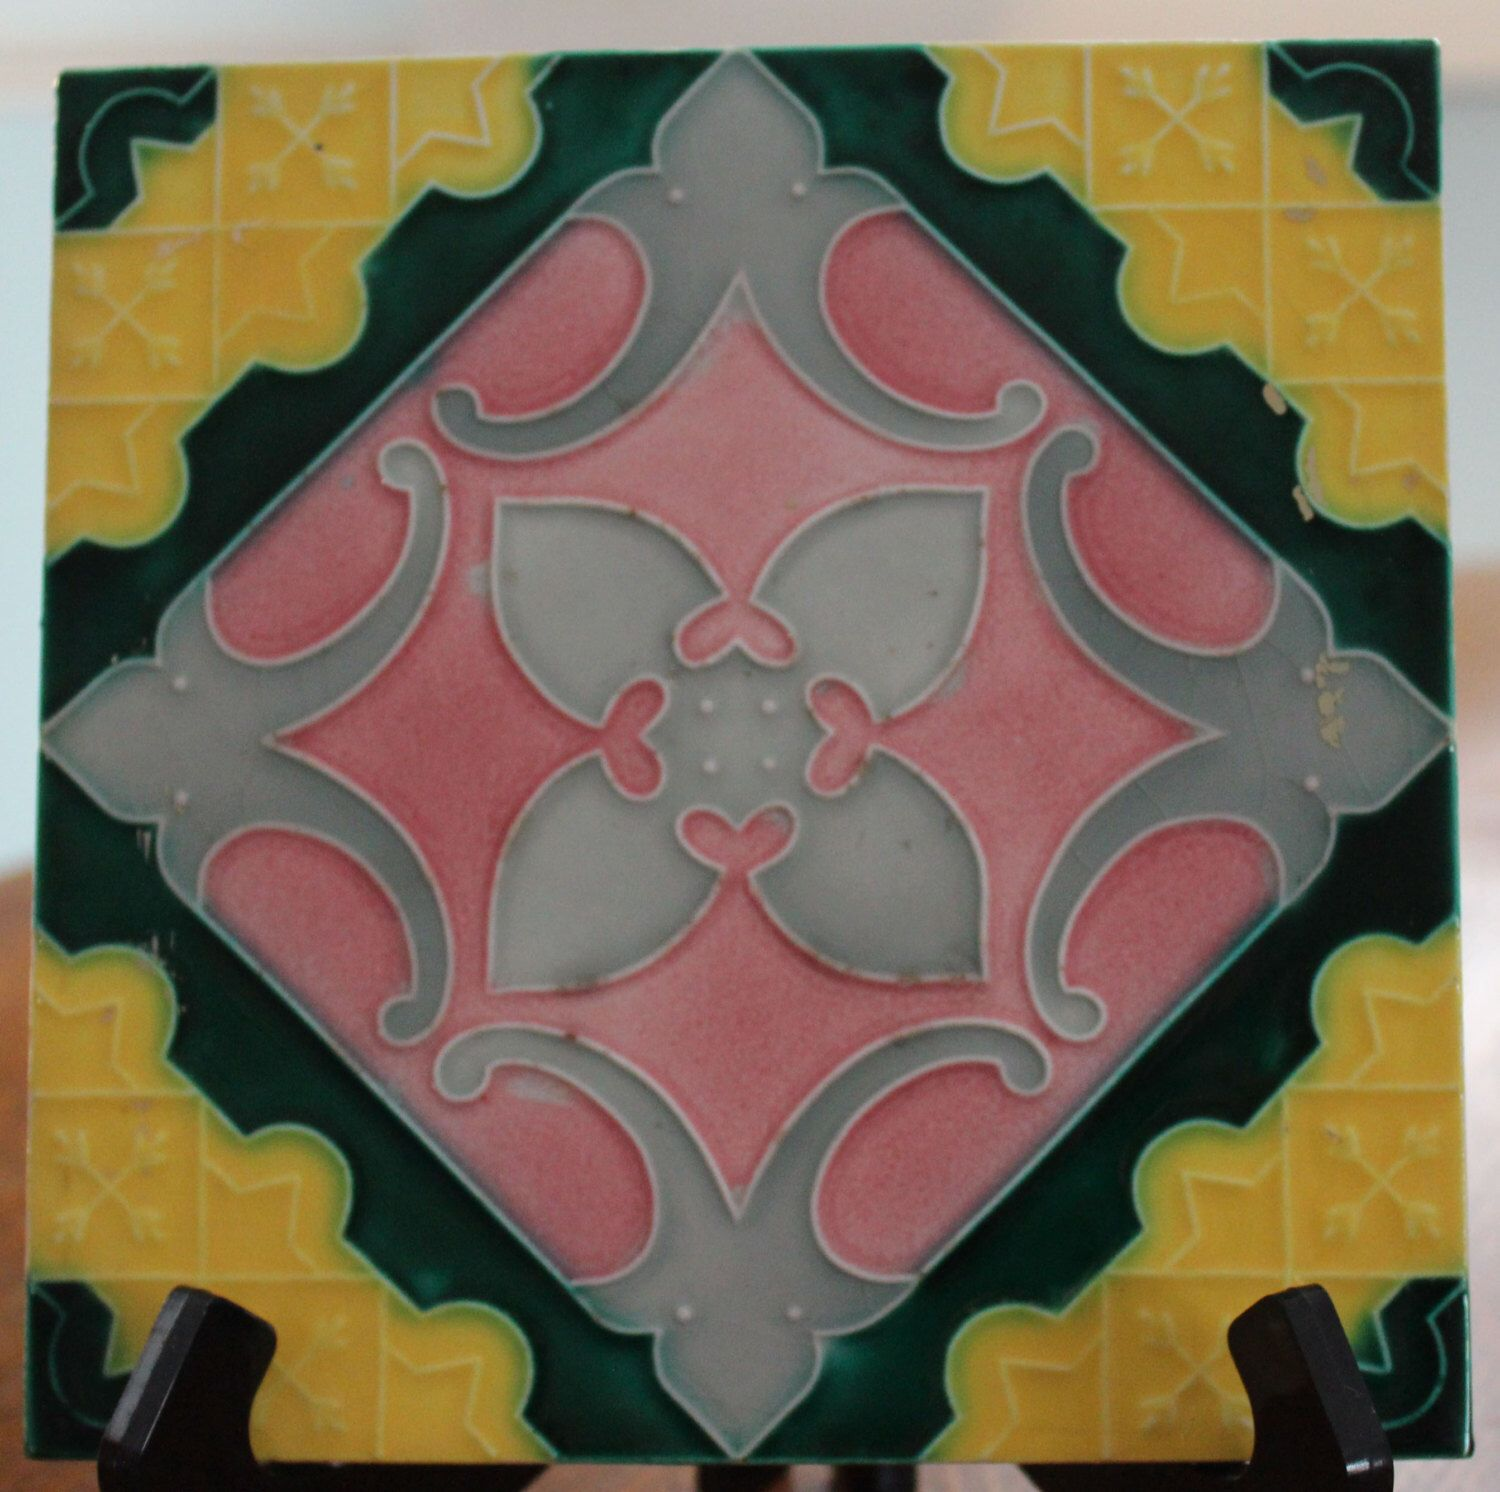 Lovely Vintage Art Deco/Arts and Crafts Majolica Tile by LittleWrensHouse on Etsy https://www.etsy.com/listing/225573028/lovely-vintage-art-decoarts-and-crafts